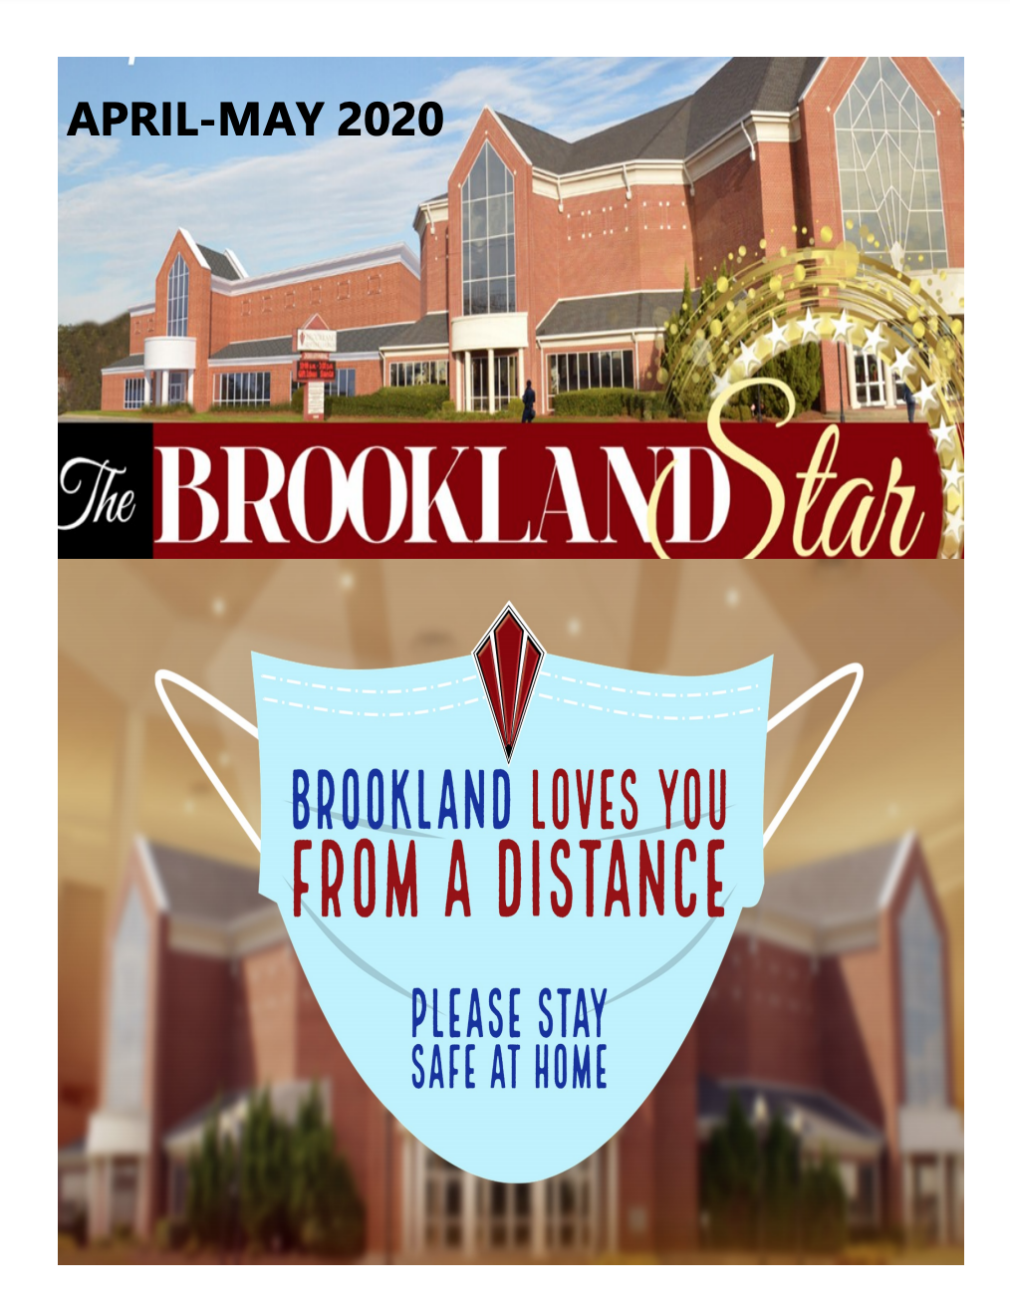 The Brookland Star April-May 2020 Edition